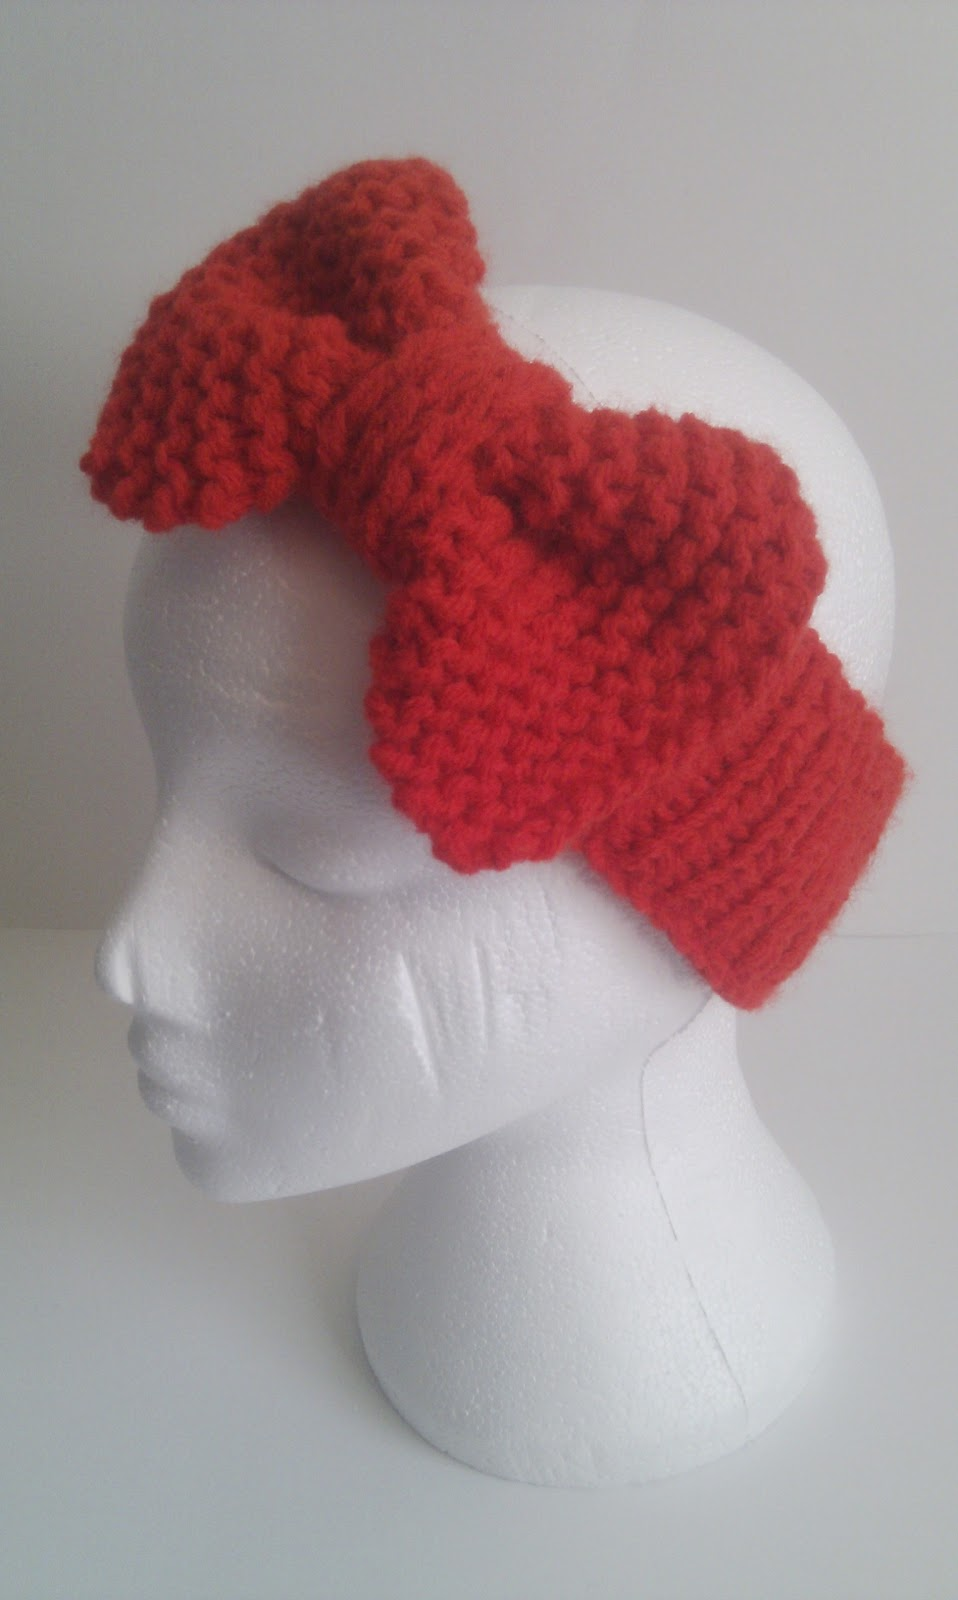 Free Headband Knitting Patterns : Musings of a knit-a-holic from Wales: Free Knitting Pattern: Beau Bow Headband